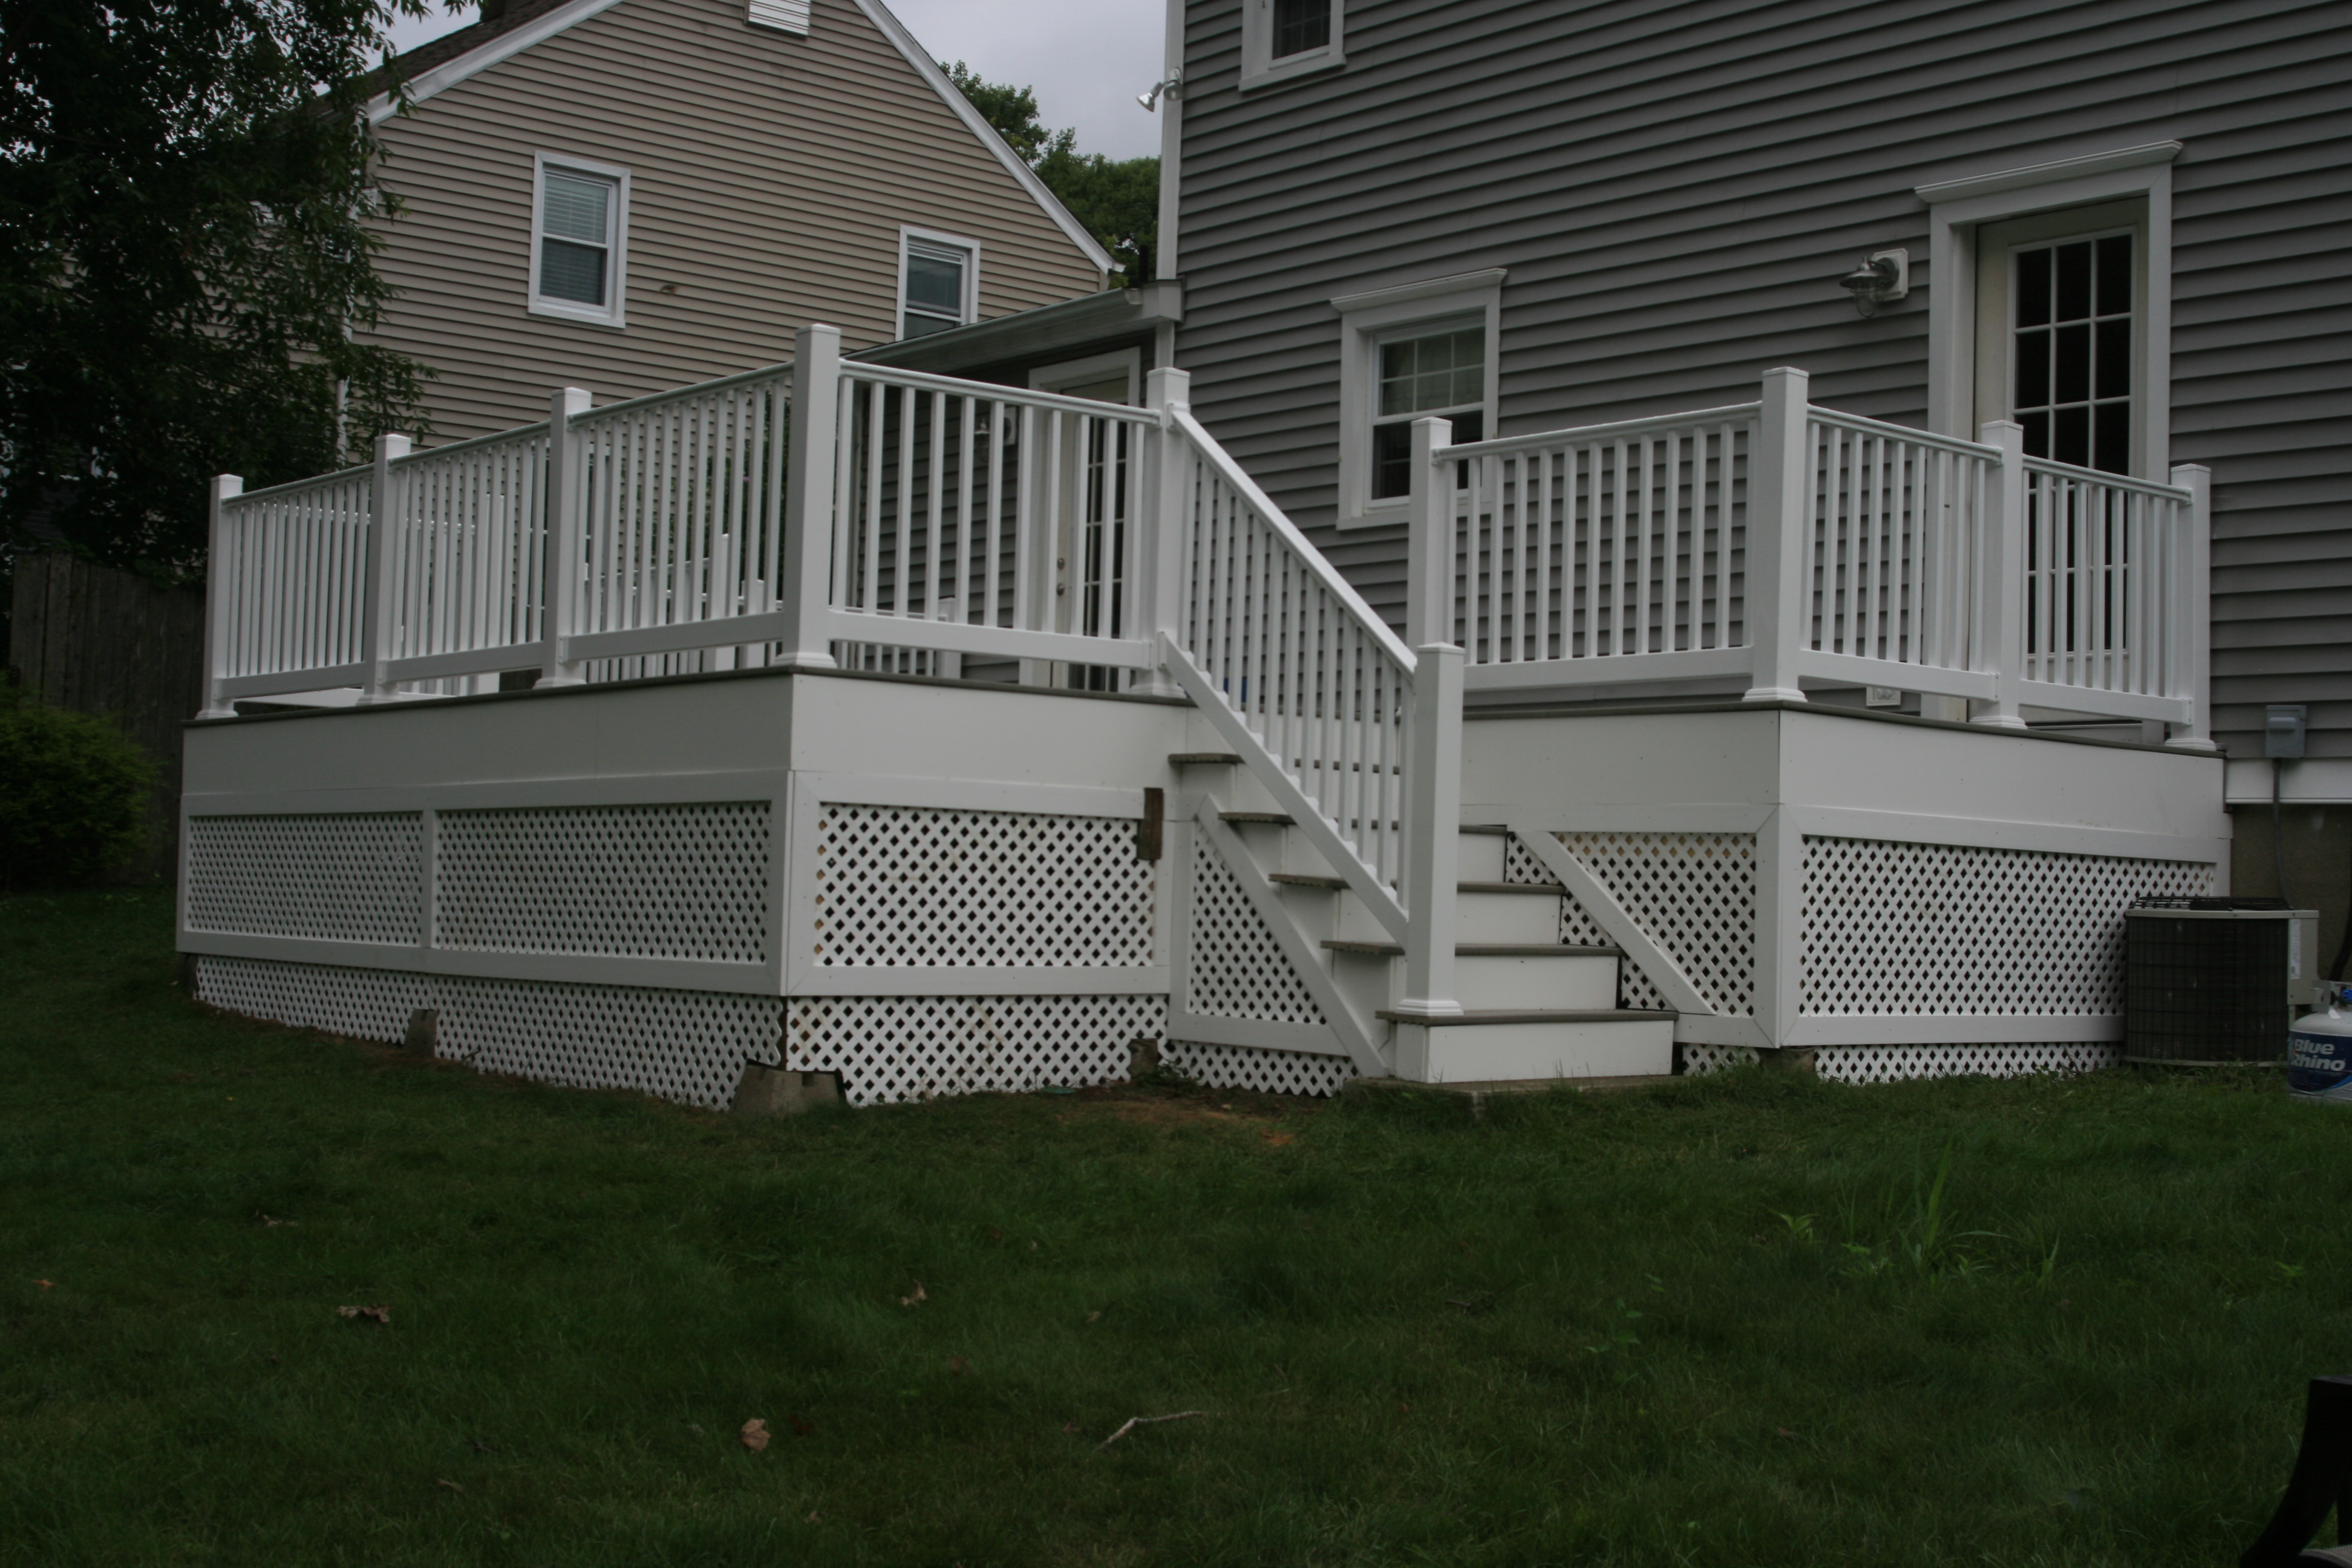 Refurbished deck with composite decking, railings, stairs and lattice work